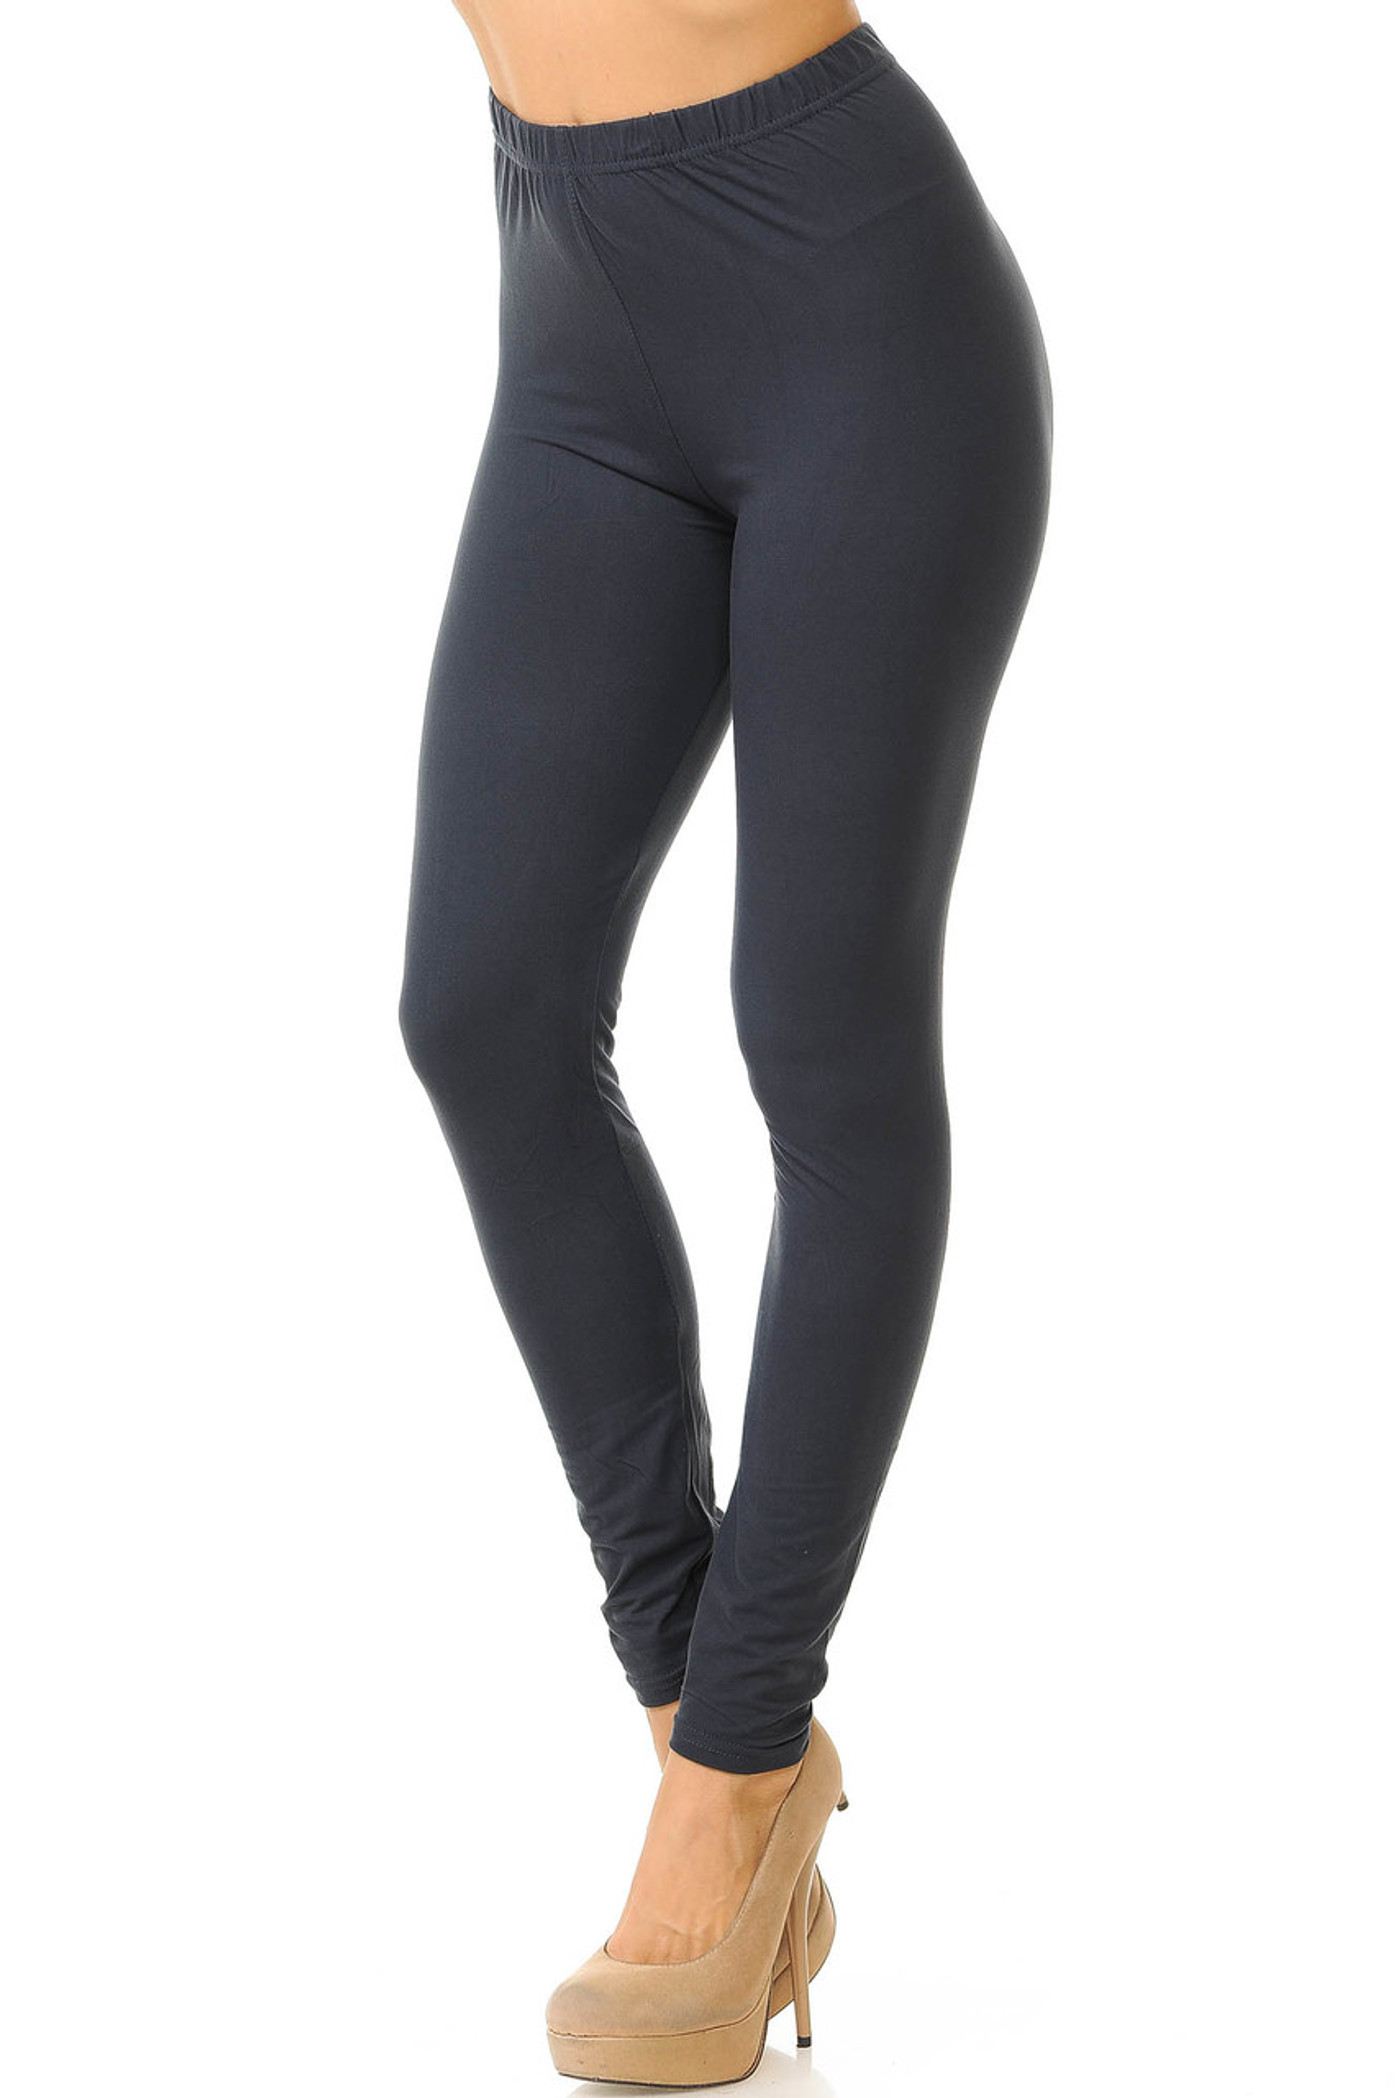 Charcoal  Basic Solid Double Brushed Leggings - New Mix